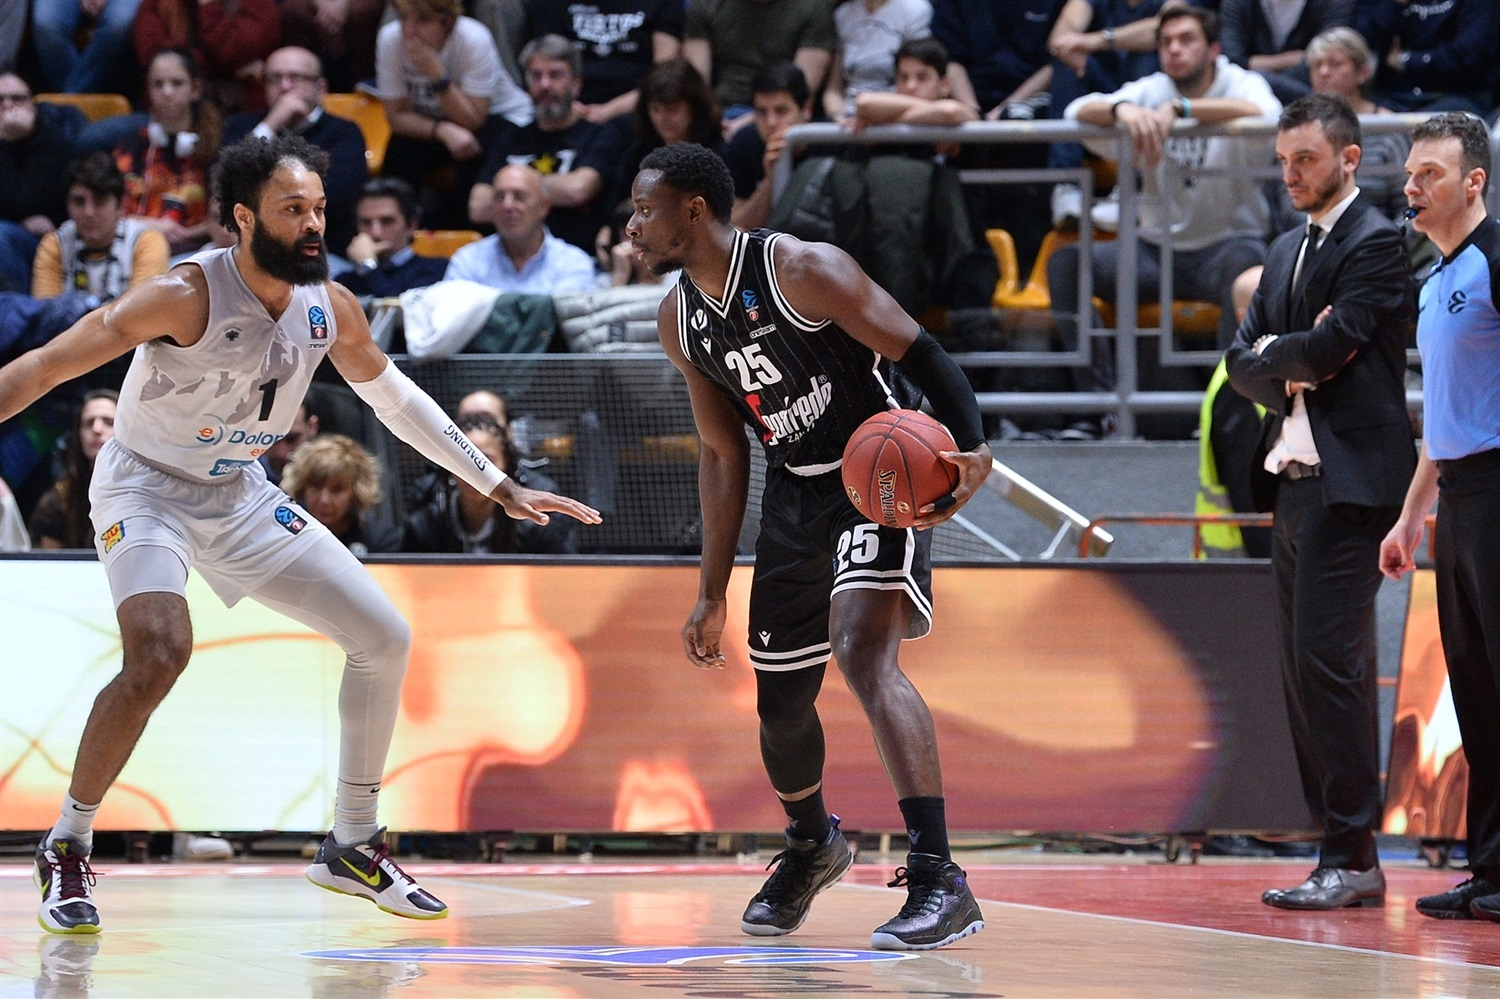 David Cournooh - Segafredo Virtus Bologna (photo Virtus) - EC19